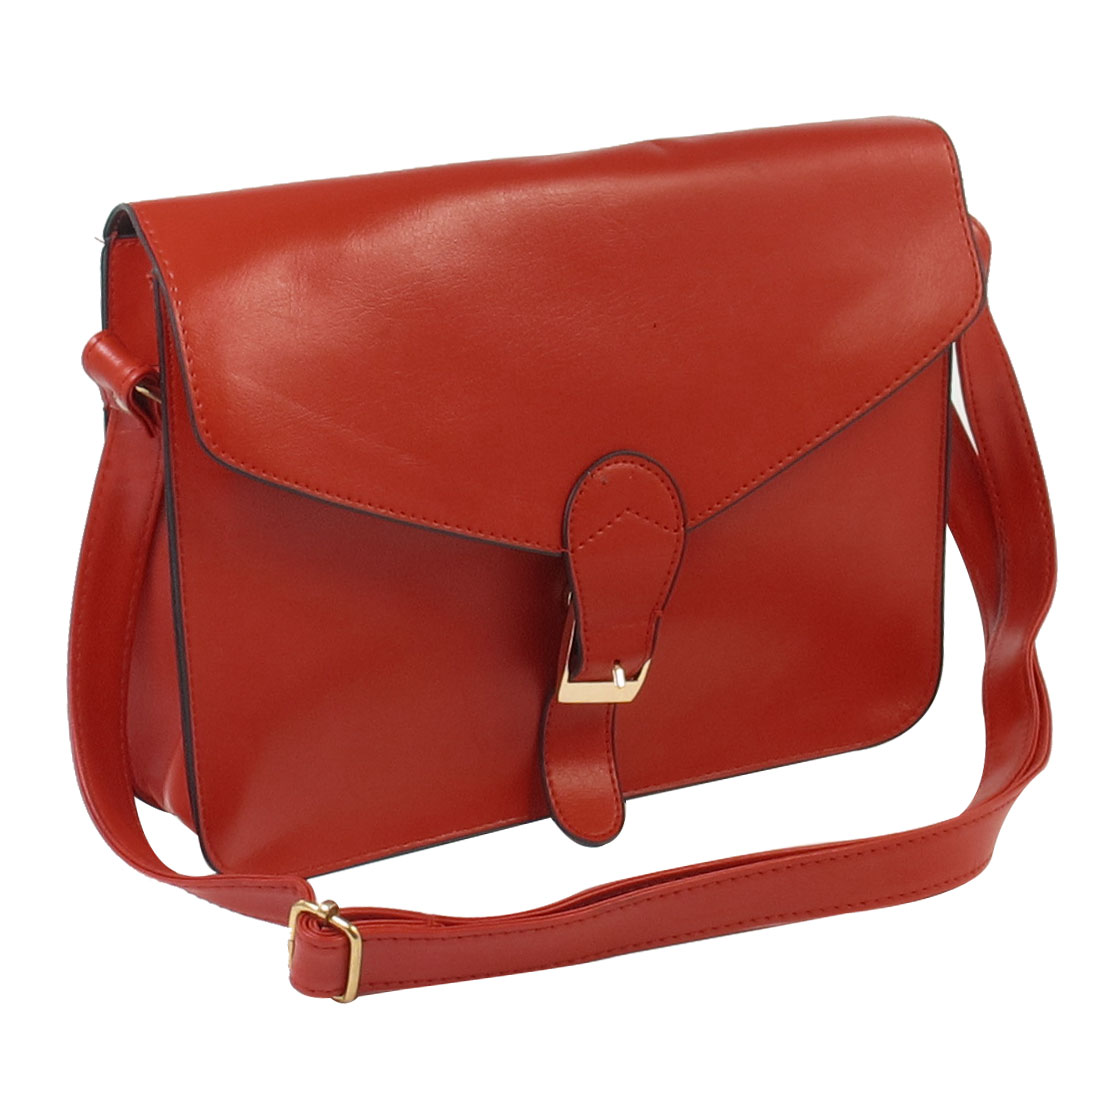 Lady Soft Faux Leather One Main Compartment Red Handbag Satchels